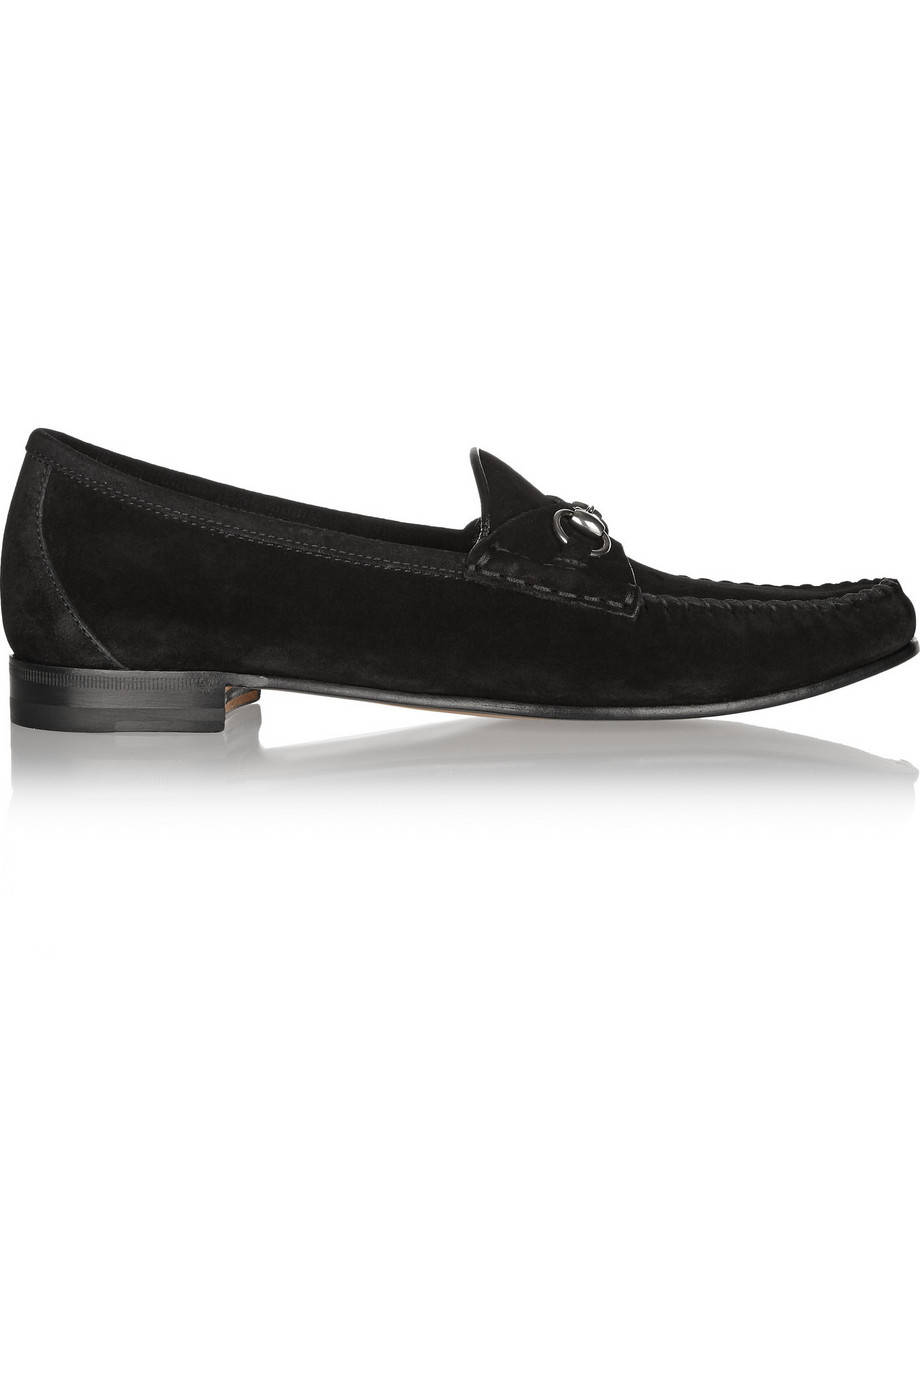 Gucci Horsebit-Detailed Suede Loafers, Black, Women's US Size: 5.5, Size: 36